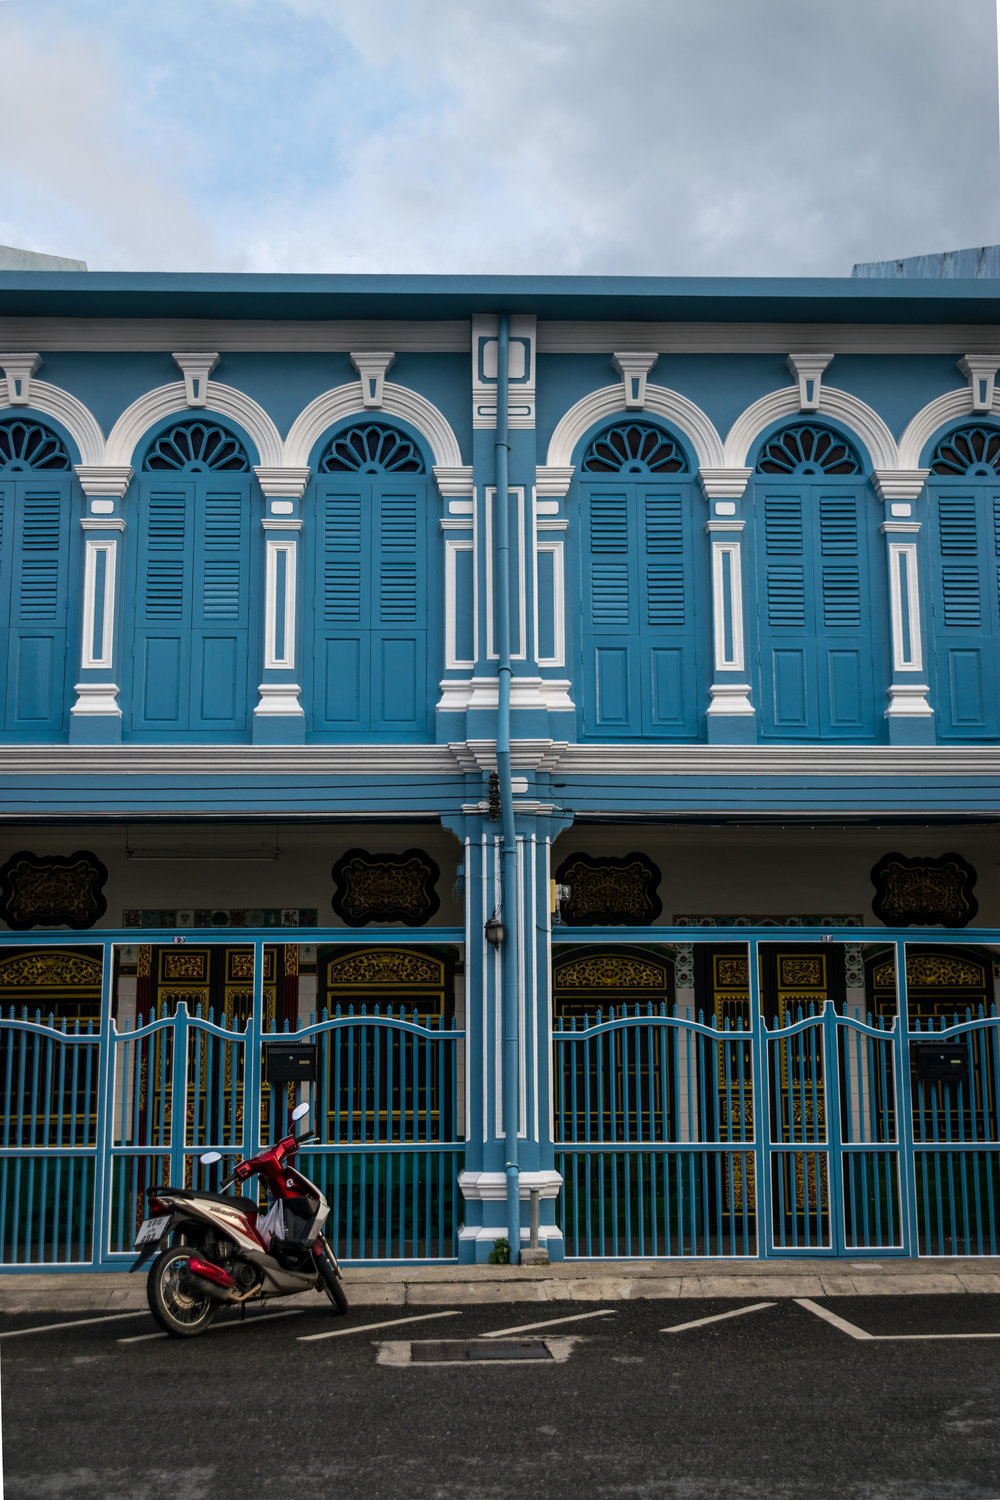 Phuket Old Town buildings-13.jpg